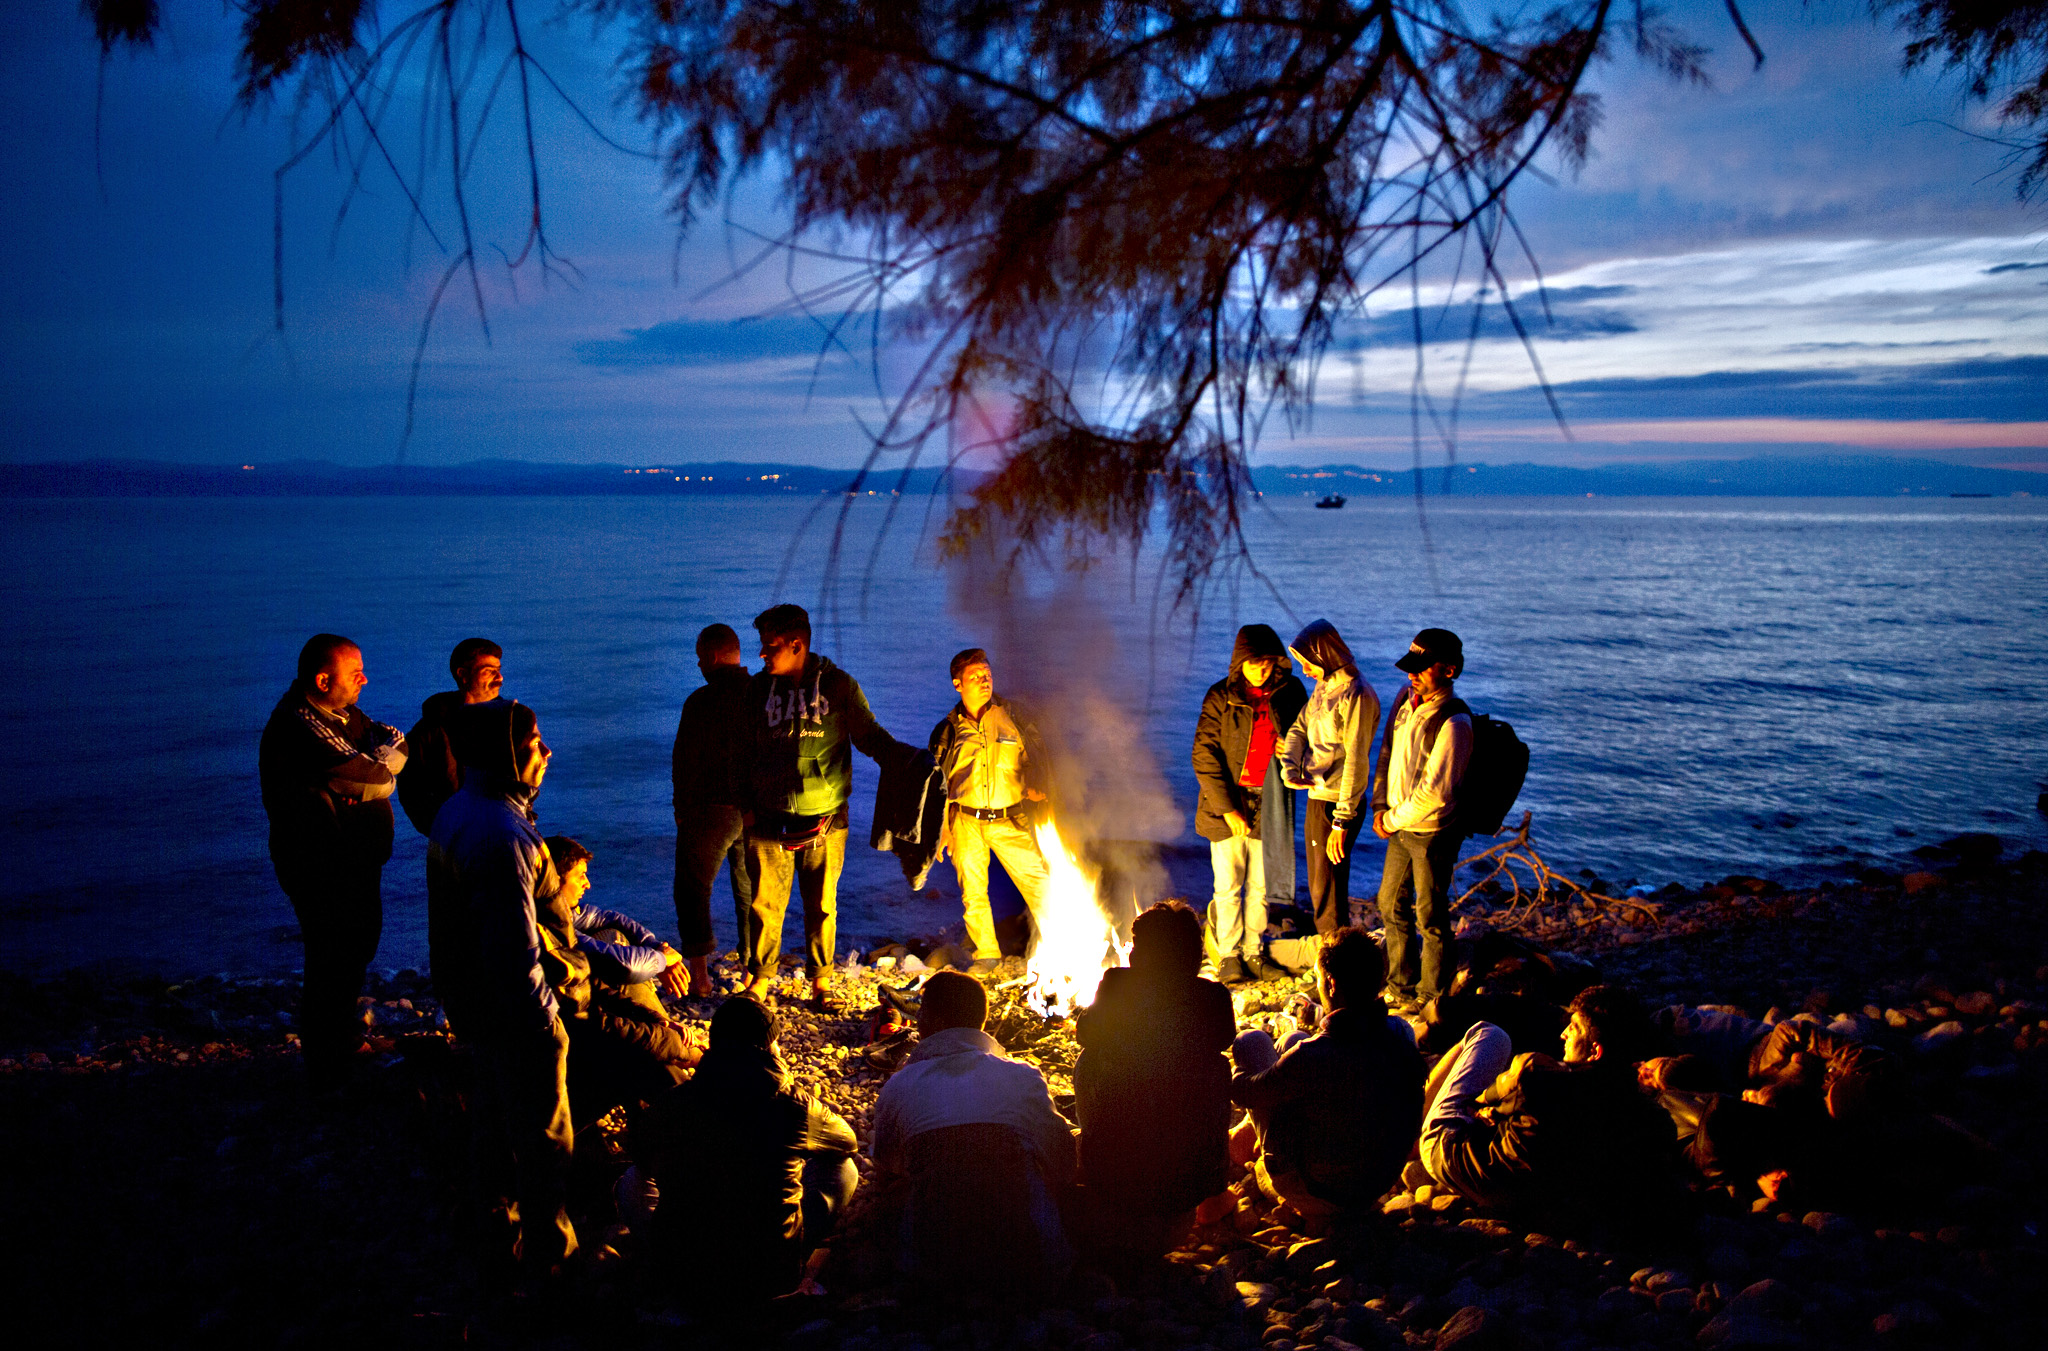 Syrian and Afghan refugees warm themselves and dry their clothes around a fire after arriving on a dinghy from the Turkish coast to the northeastern Greek island of Lesbos, early Wednesday, Oct. 7, 2015.